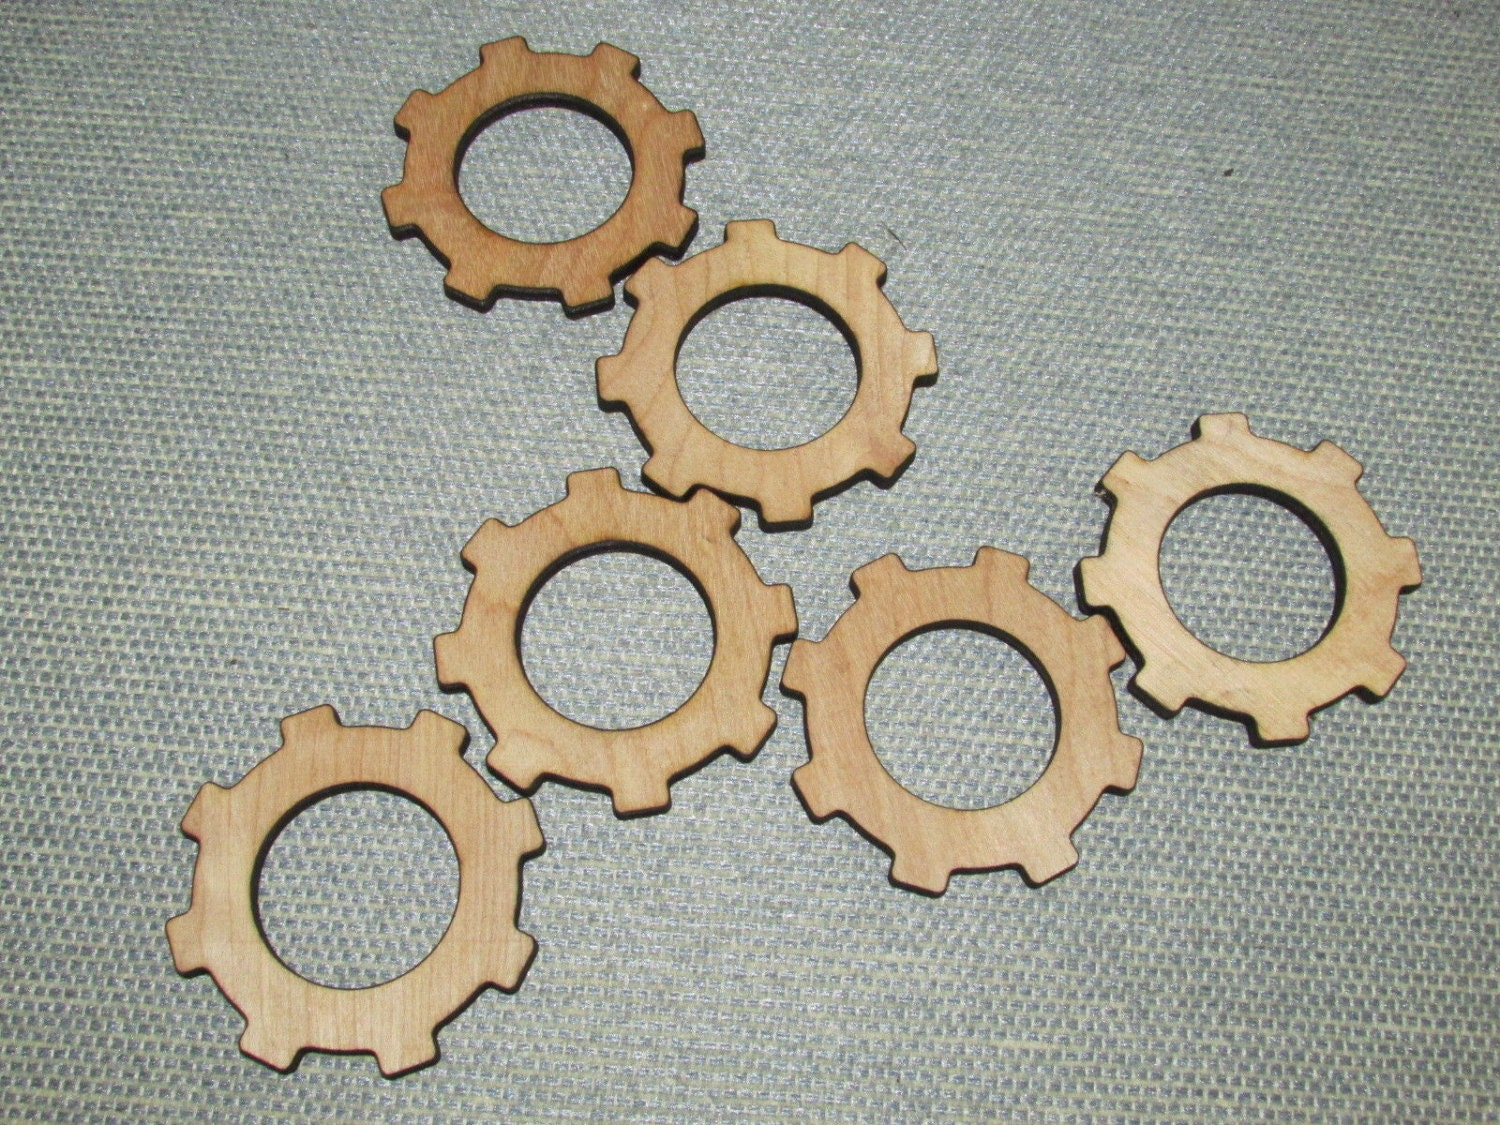 Wall Decor Gears : Lot of wood wooden gears steampunk wall art decor